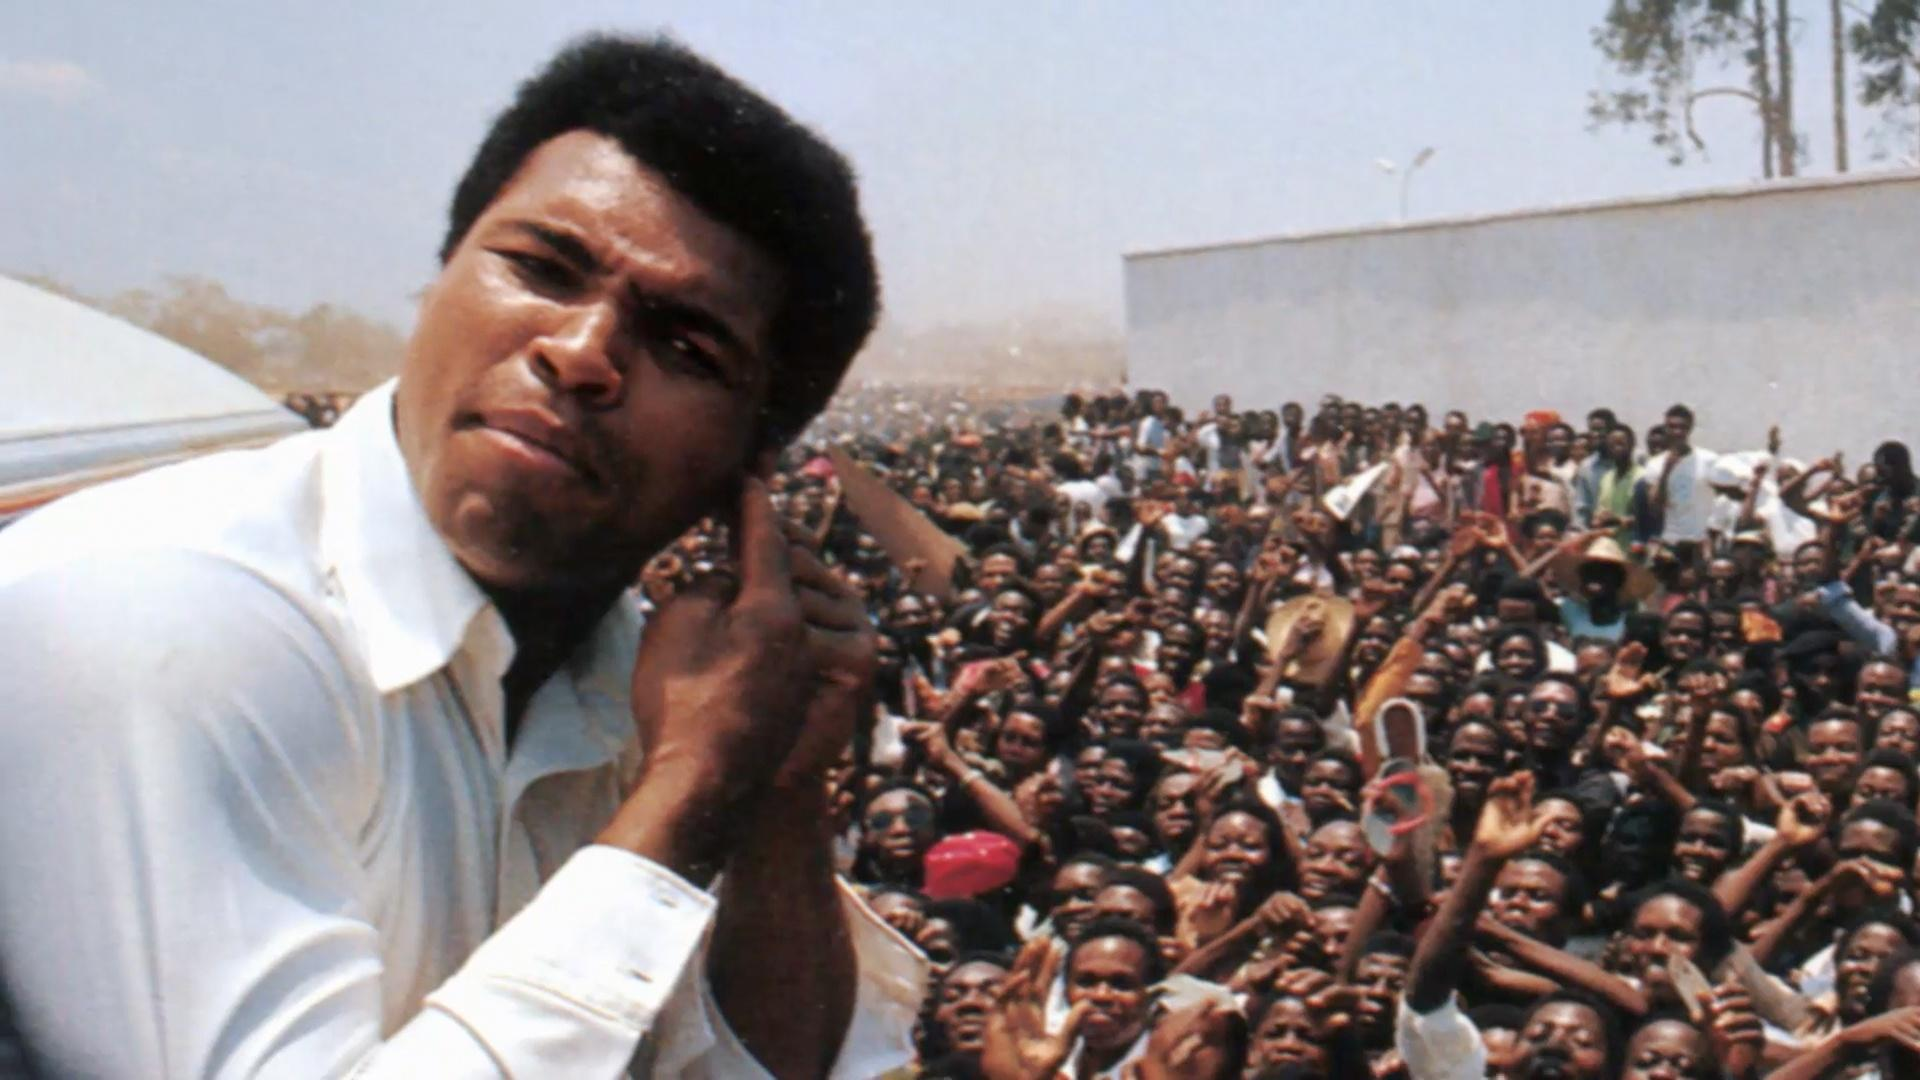 an introduction to the life of muhammad ali Introduction muhammad ali was one of america's greatest 20th-century boxers and athletes muhammad ali was born cassius clay in louisville, kentucky he started .